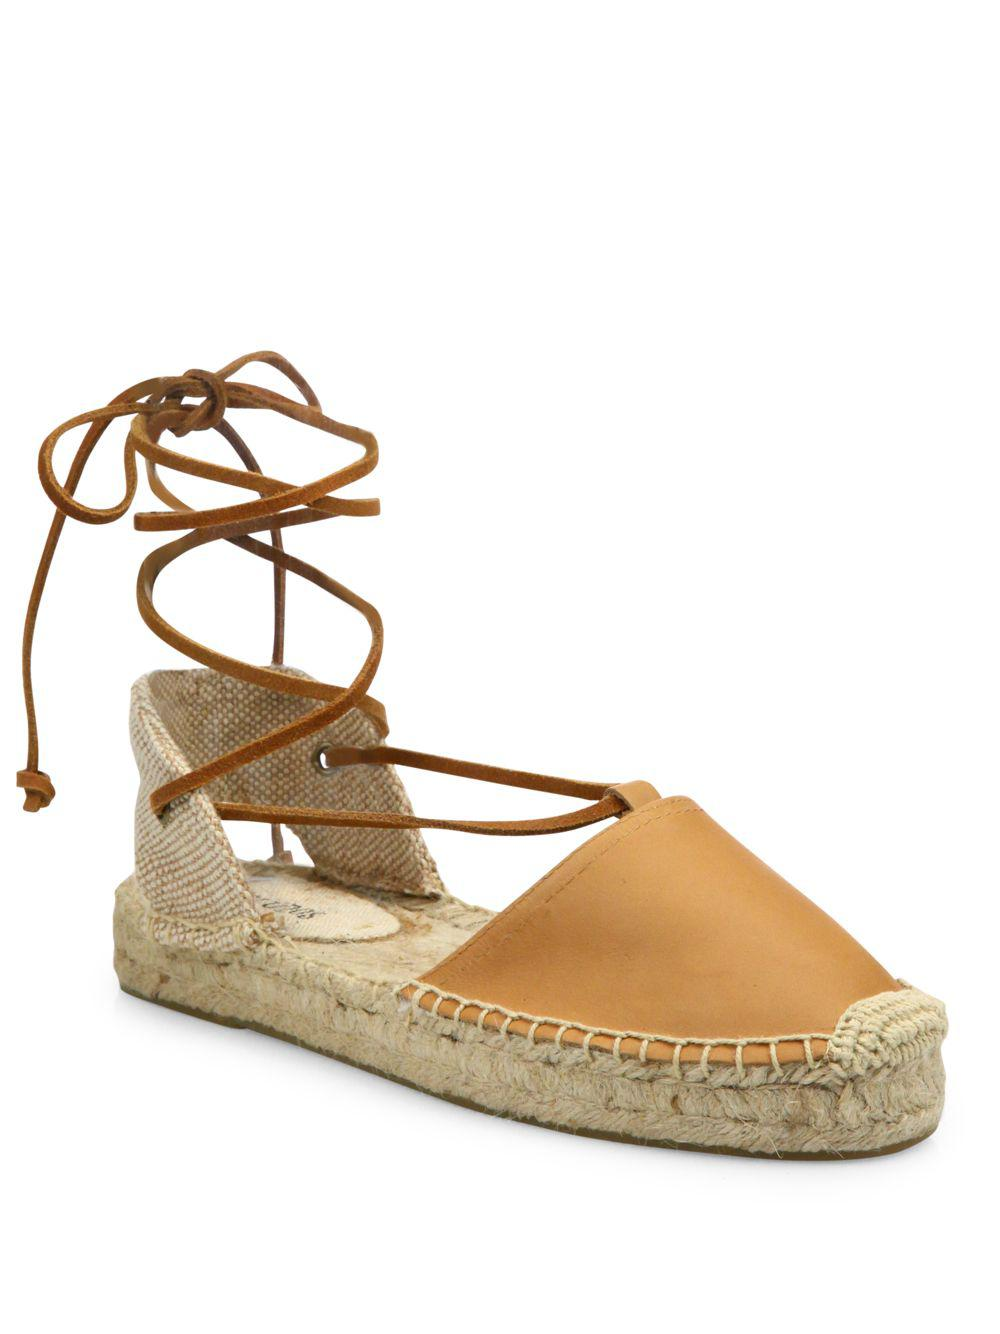 Soludos. Women's Brown Leather Lace-up Espadrilles